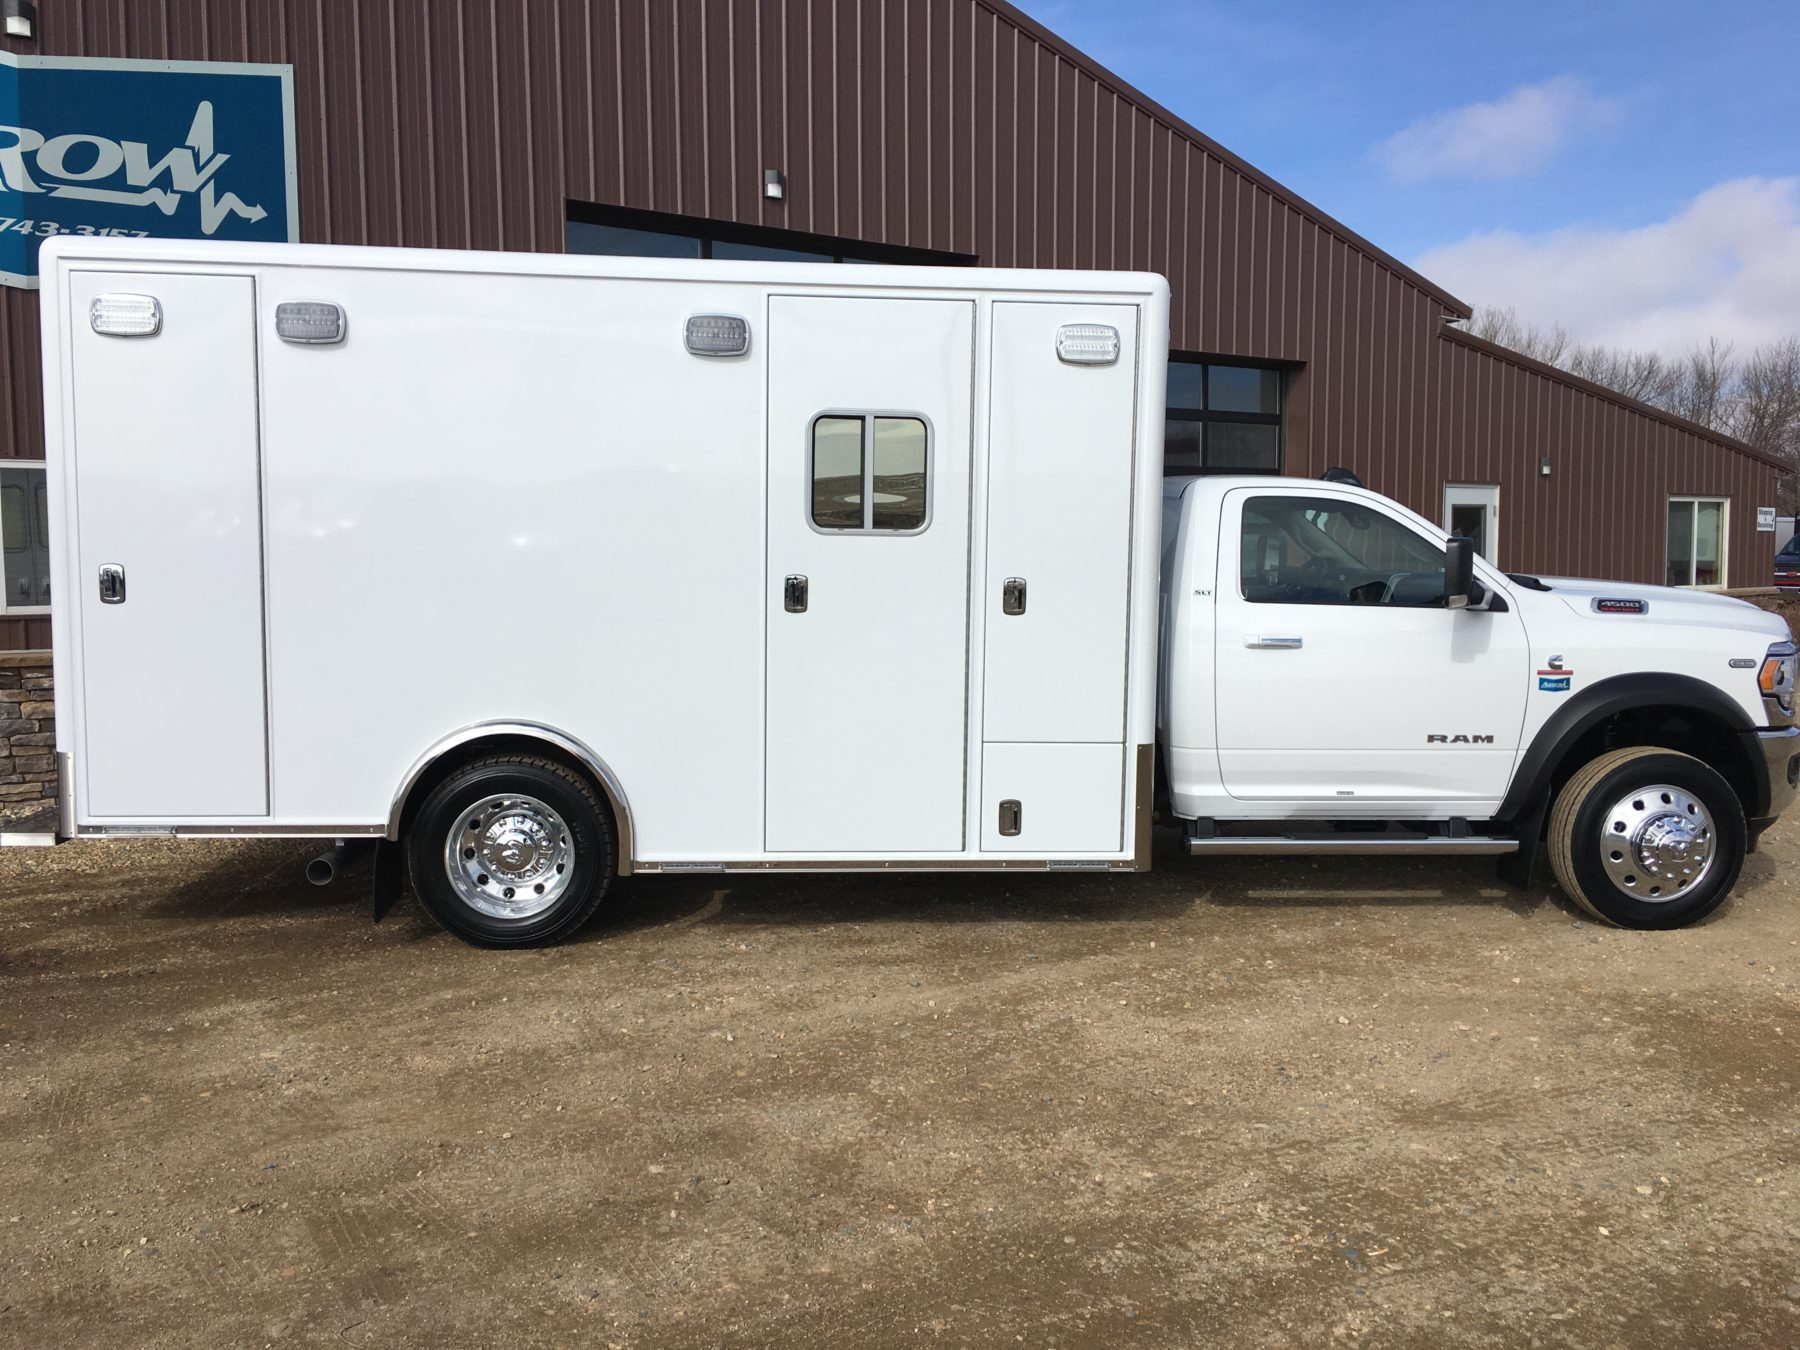 2019 Ram 4500 4x4 Heavy Duty Ambulance For Sale – Picture 5